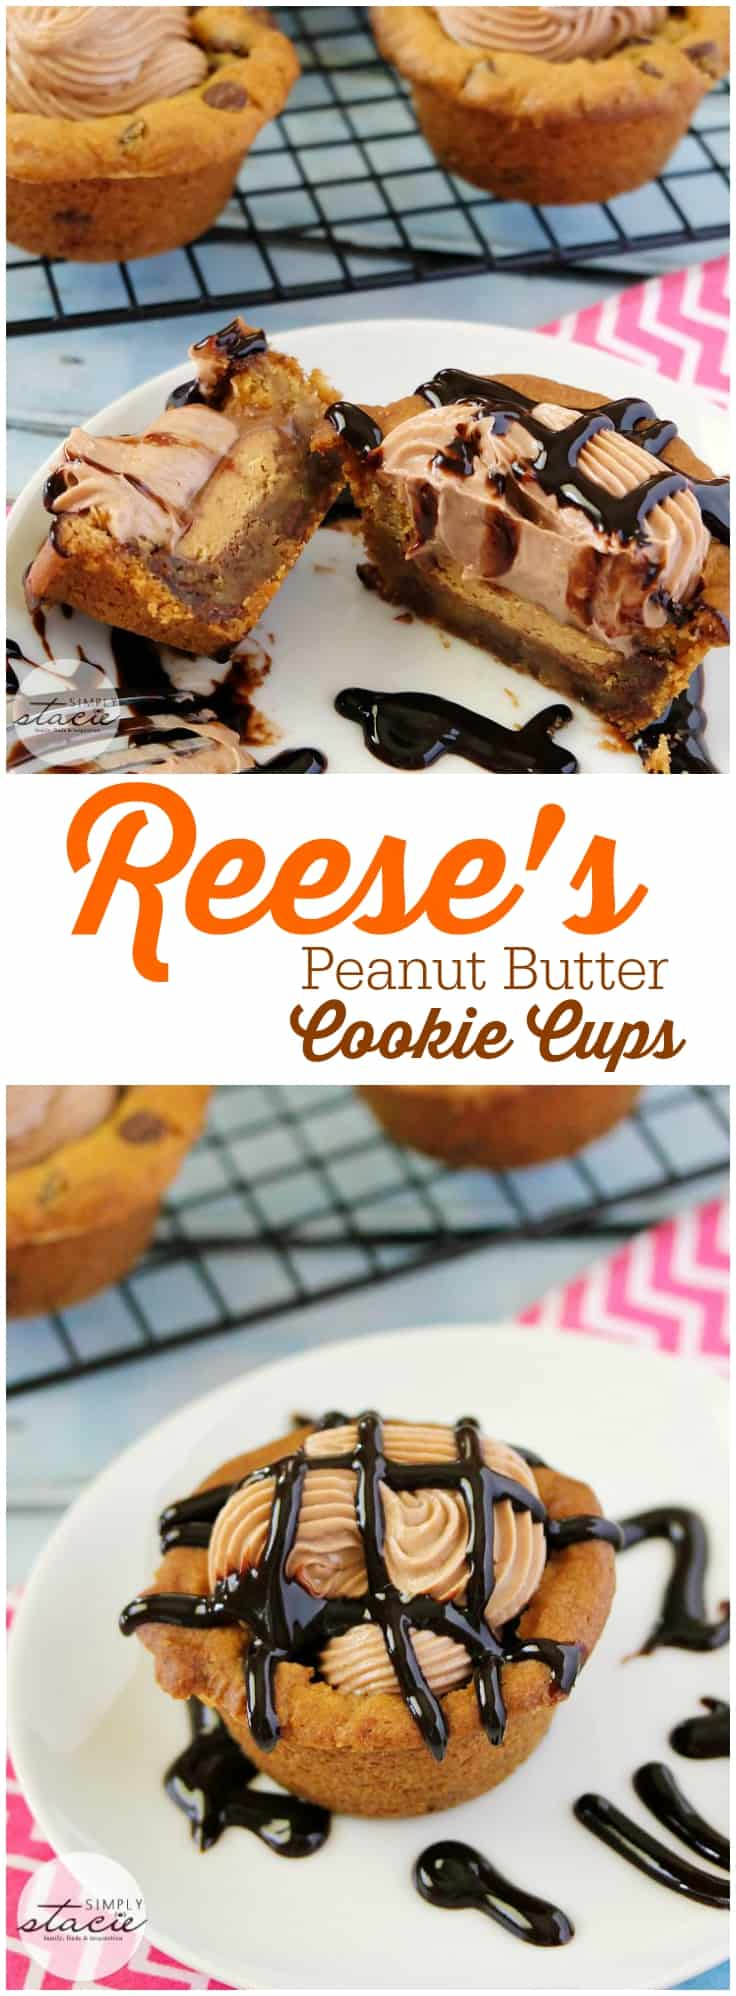 Reese's Peanut Butter Cookie Cups - A chocolate chip cookie cup stuffed with a Peanut Butter Cup, creamy peanut butter & chocolate filling and a drizzle of chocolate on top.